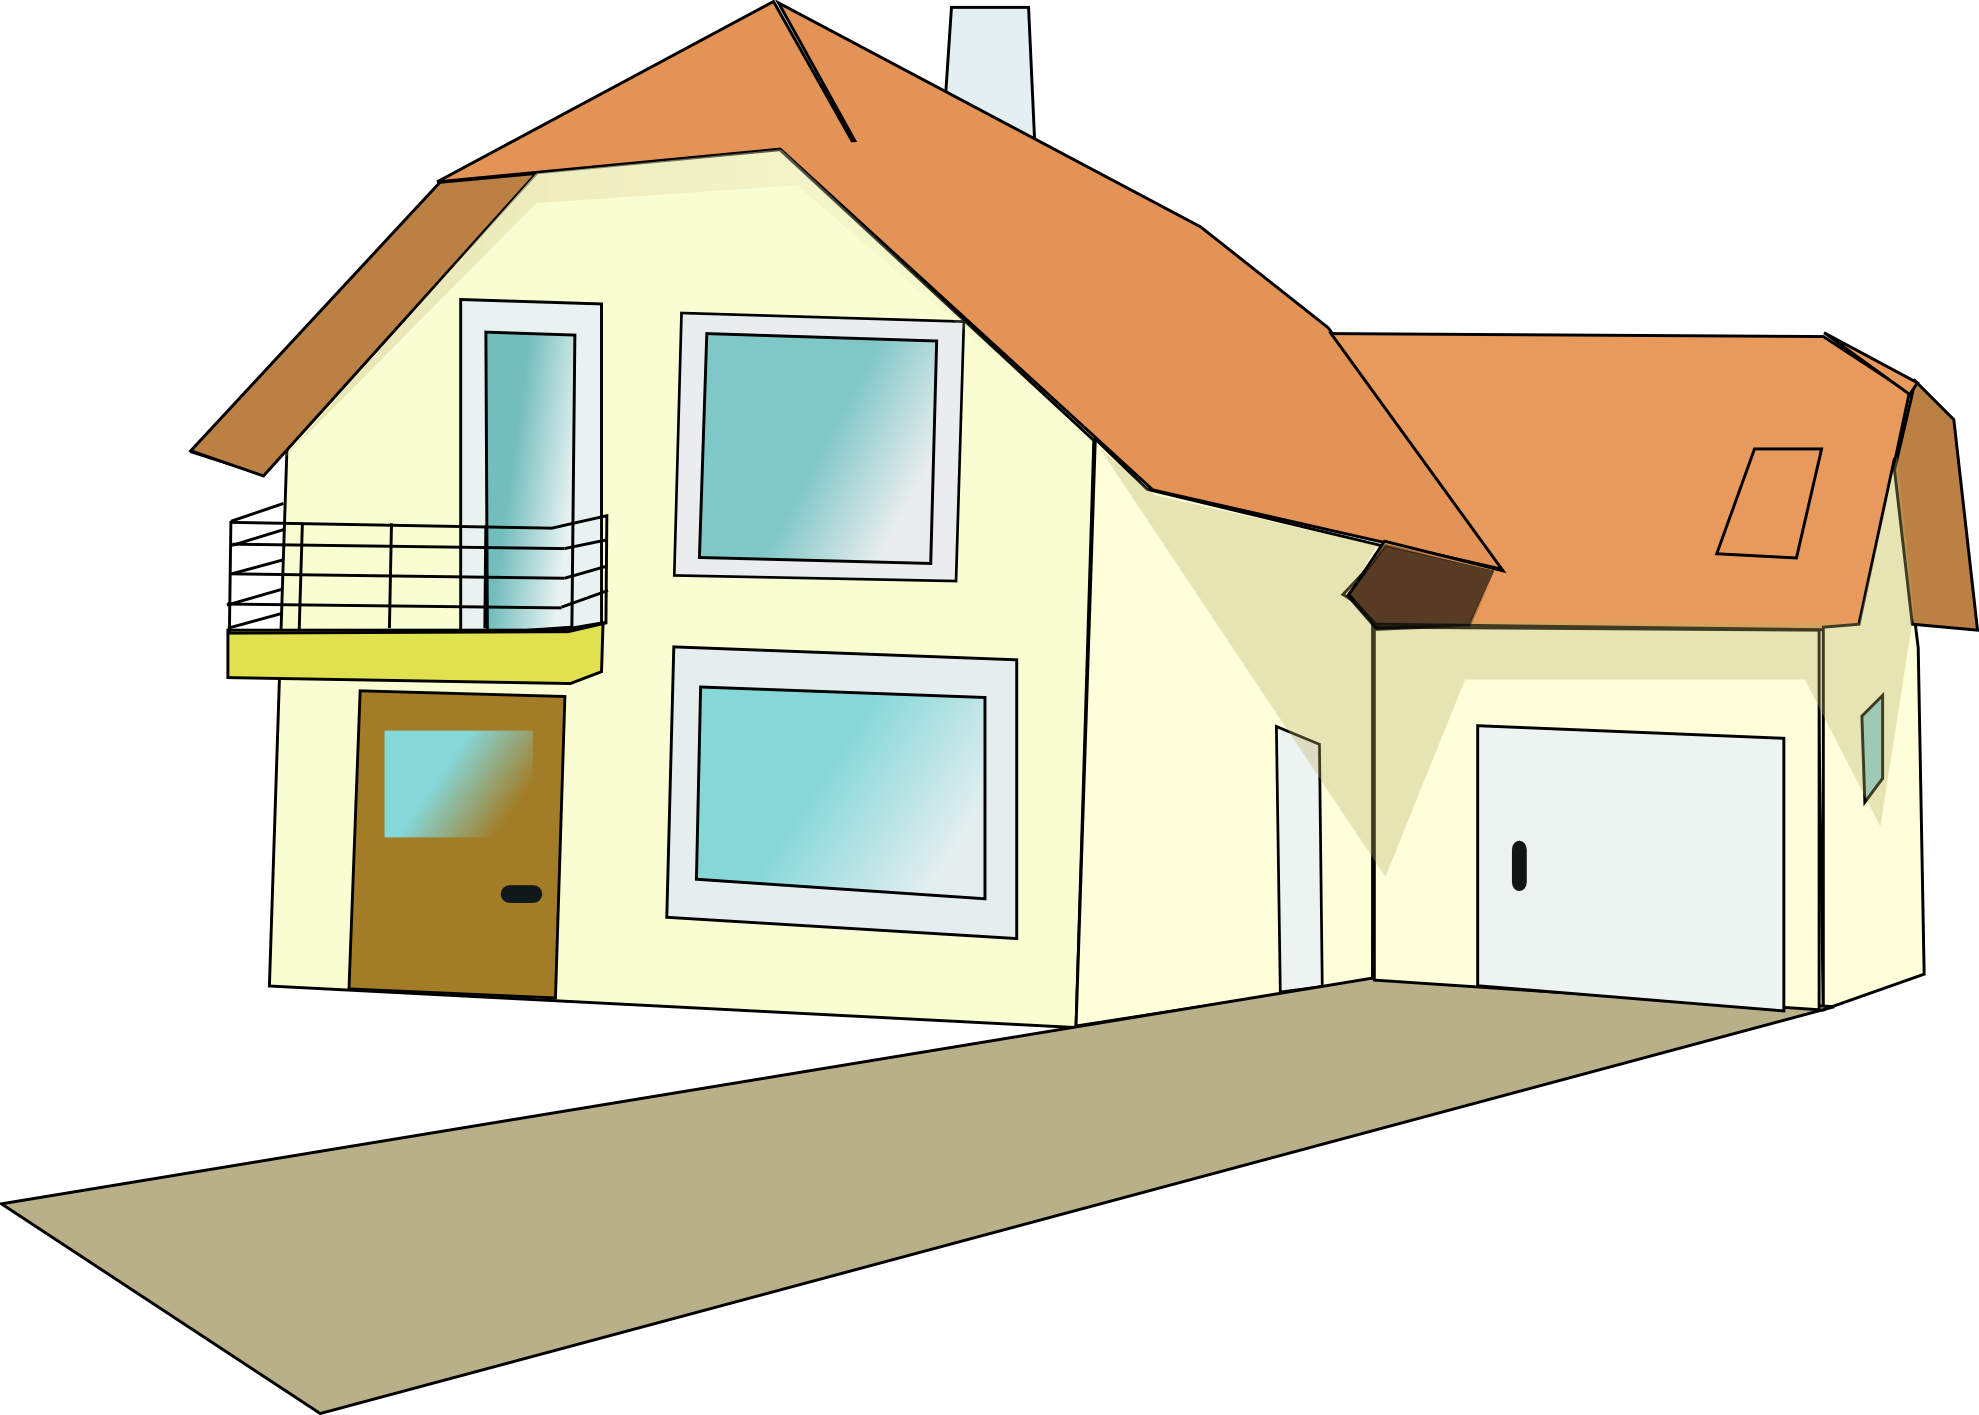 house clipart png - photo #31